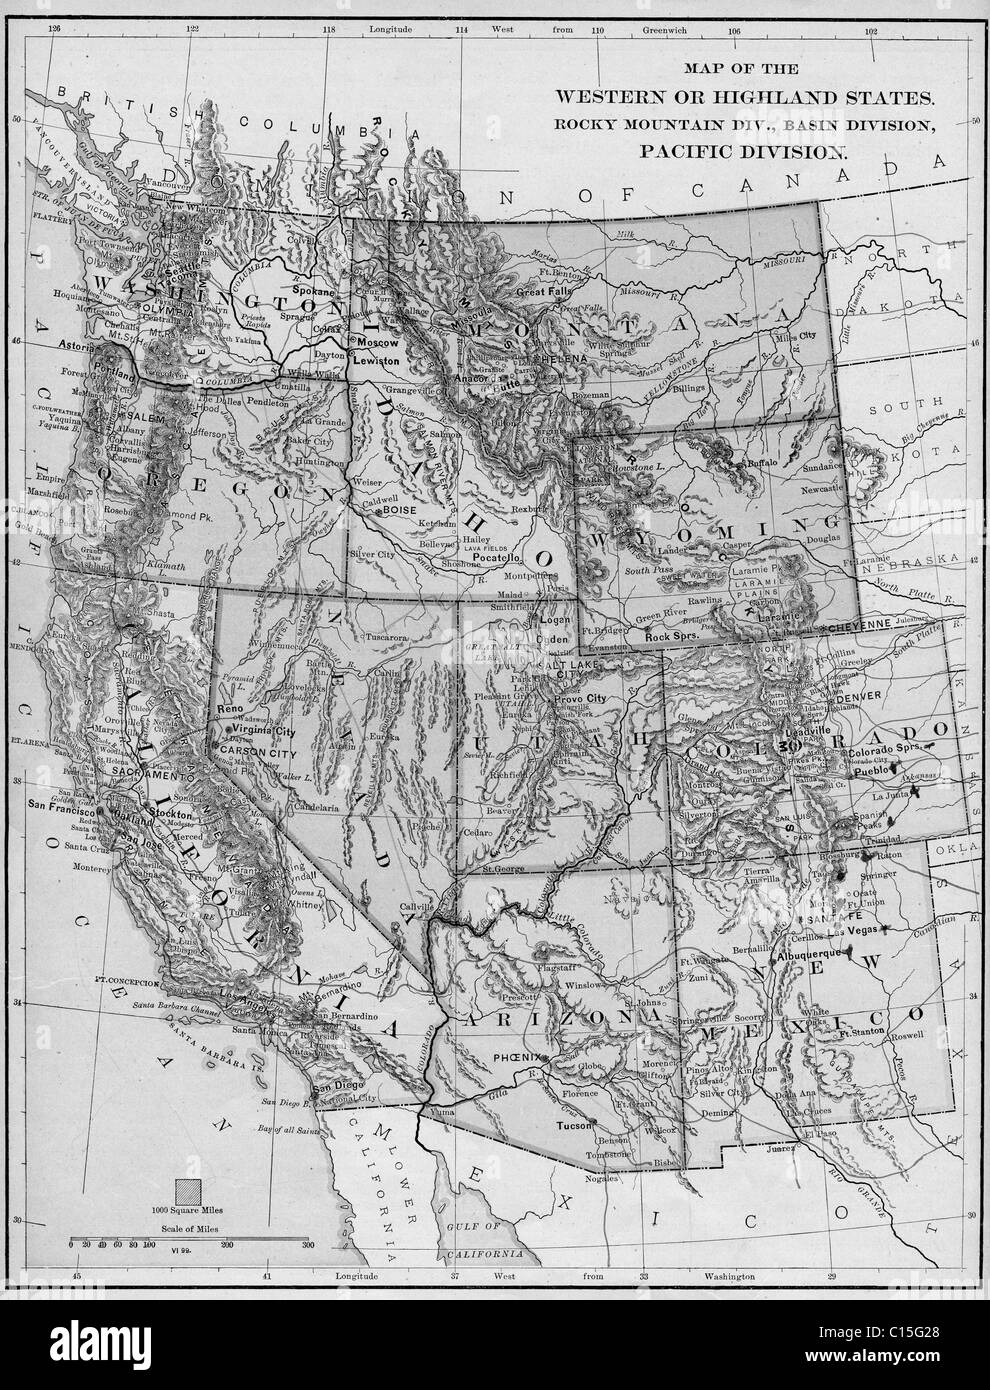 Old map of western United States from original geography ...